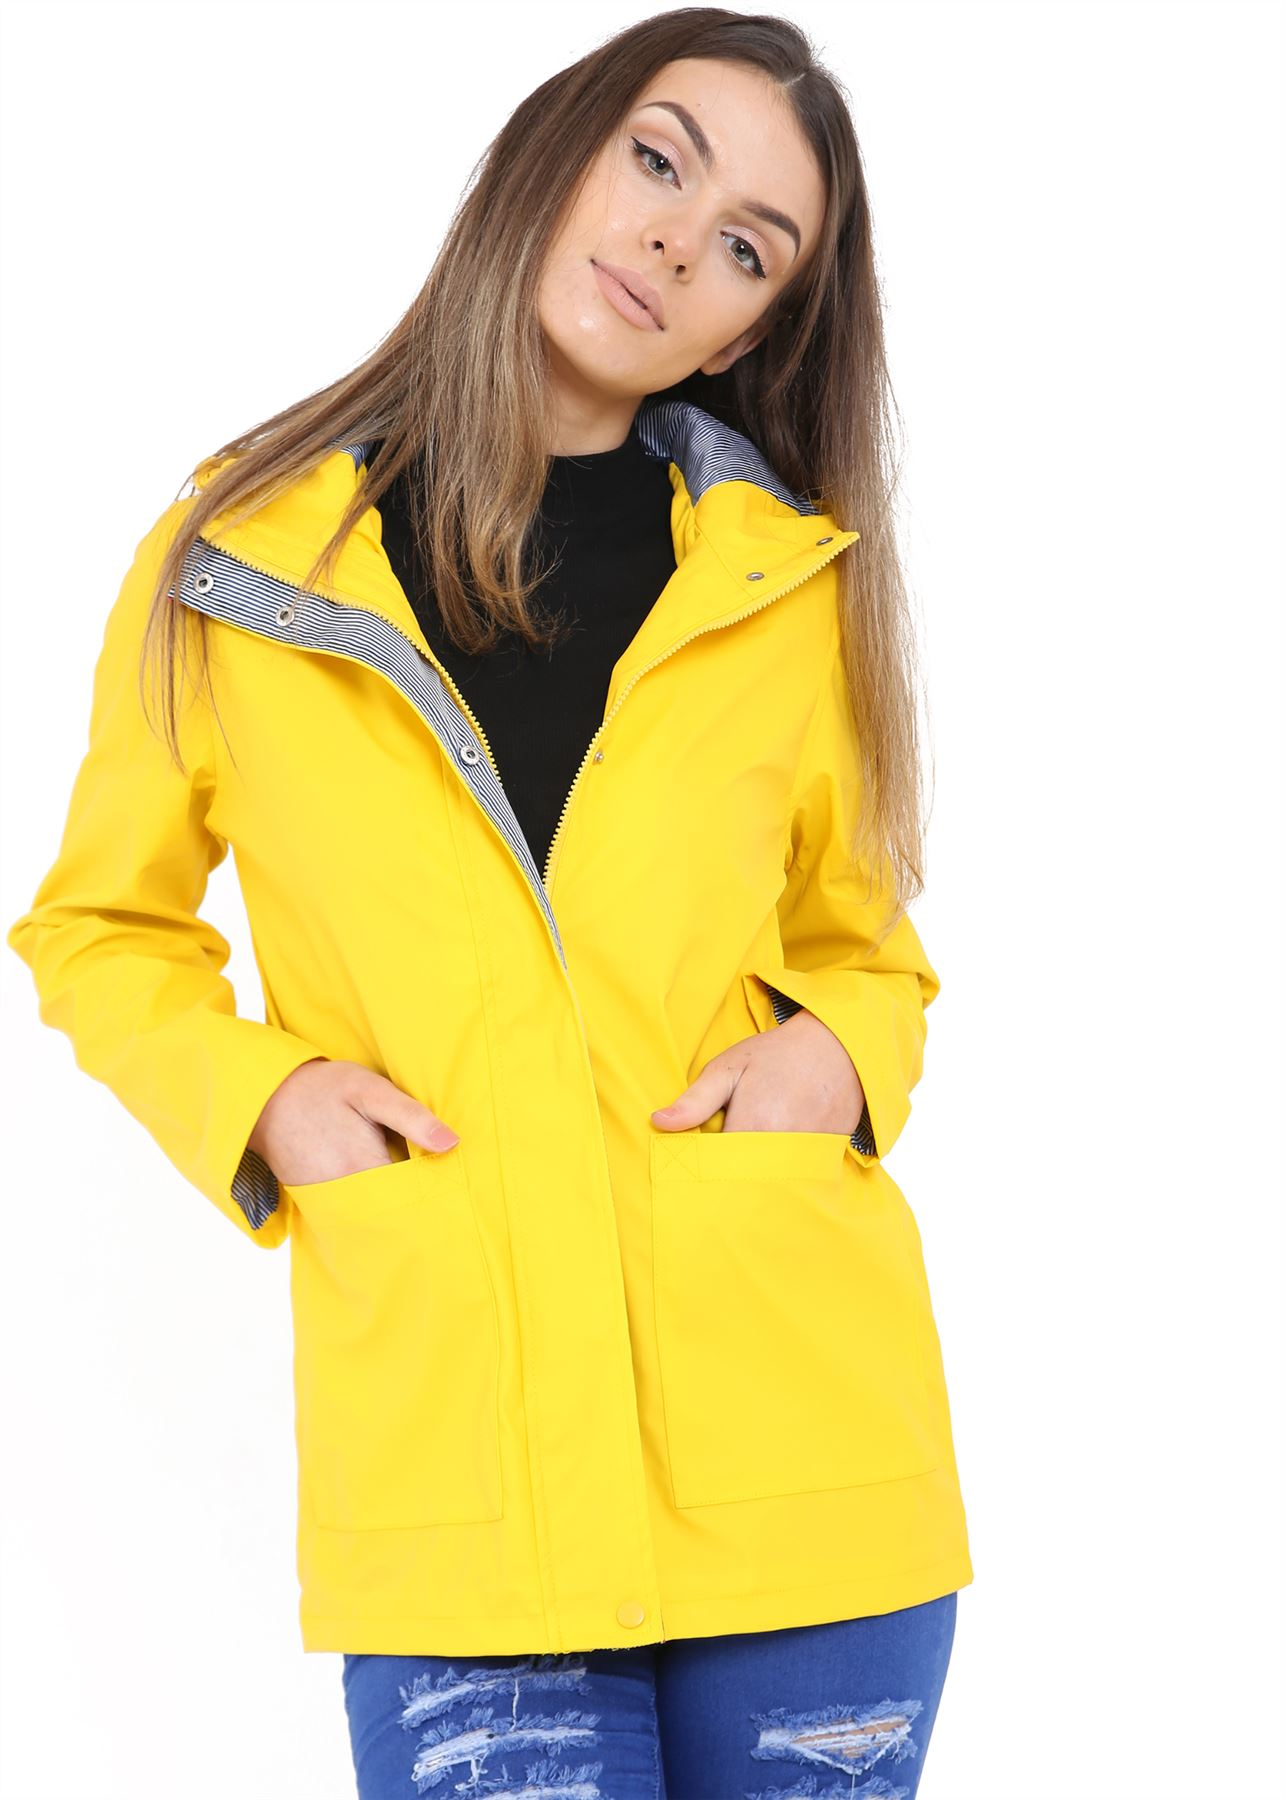 Find a great selection of raincoats for women at wilmergolding6jn1.gq Shop by feature, length, and closure from brands like The North Face, Cole Haan, Pendleton & more. Check out our entire collection. Free shipping & returns.